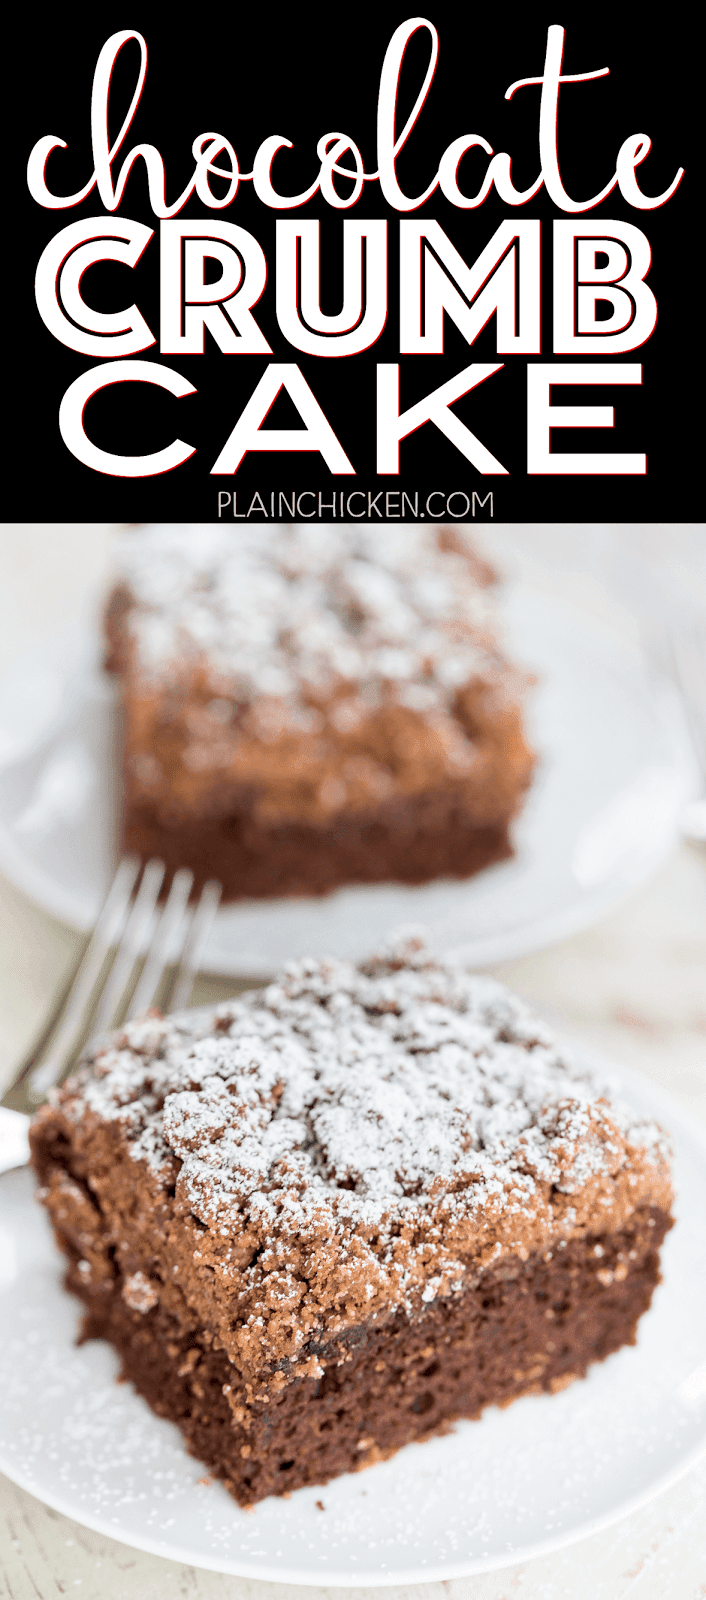 Chocolate Crumb Cake - chocolate cake mix topped with an easy homemade crumb topping. Chocolate cake mix, sugar, brown sugar, cinnamon, butter and cake flour. Super easy to make and tastes great. This cake is OUTRAGEOUSLY good! I could not stop eating it! Great for a crowd. We ate this for breakfast and dessert.